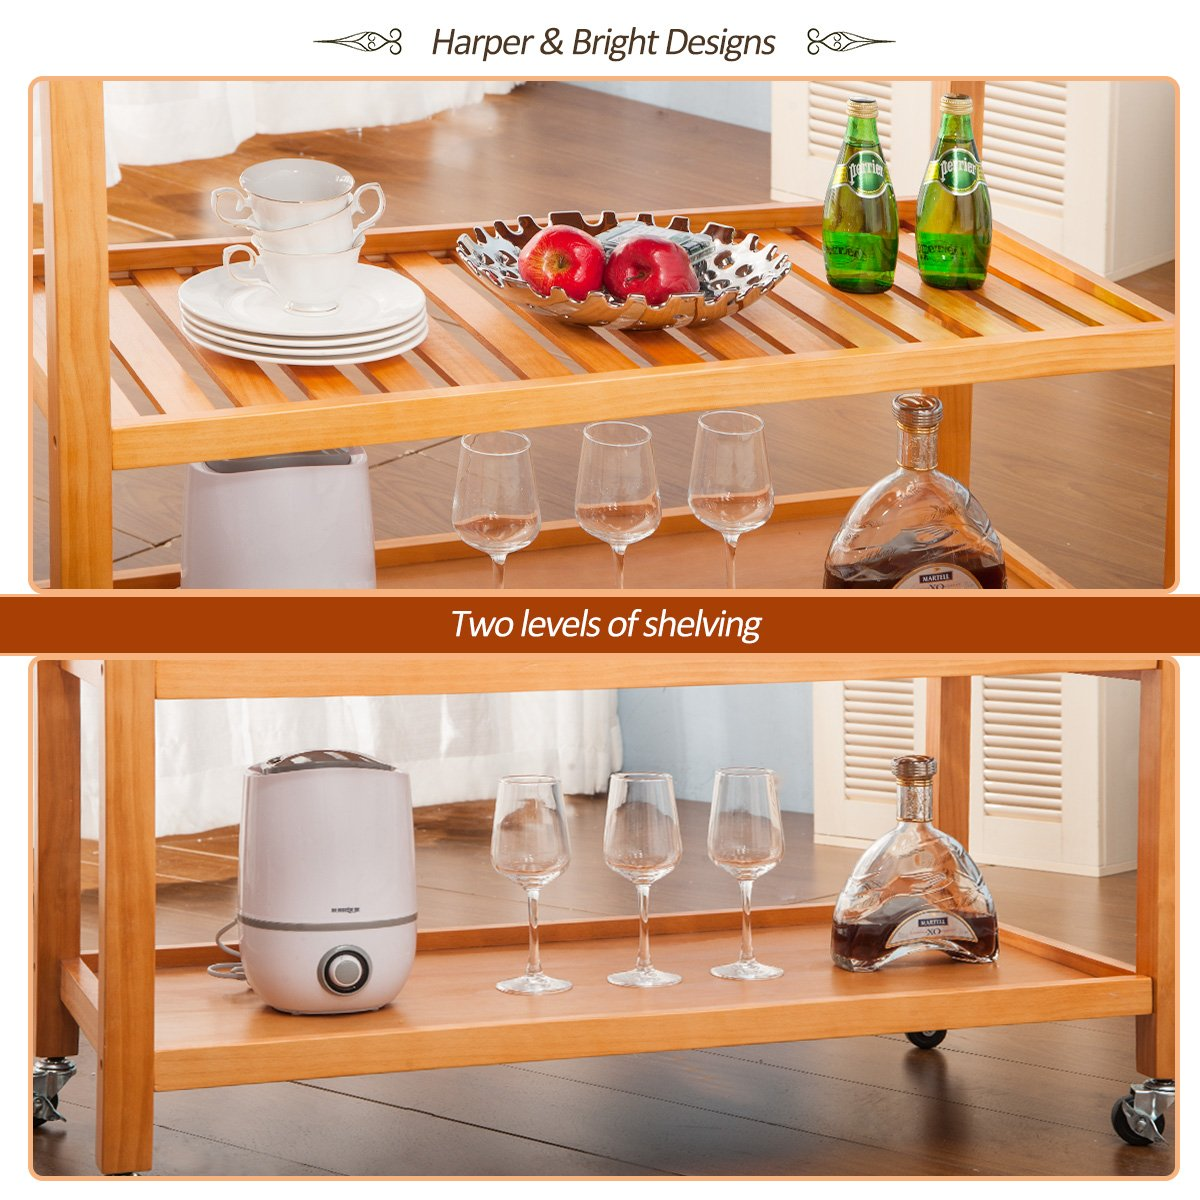 Harper&Bright Designs with Drawers & Shelves (Walnut) Kitchen Dining Trolley Cart by Harper&Bright Designs (Image #4)